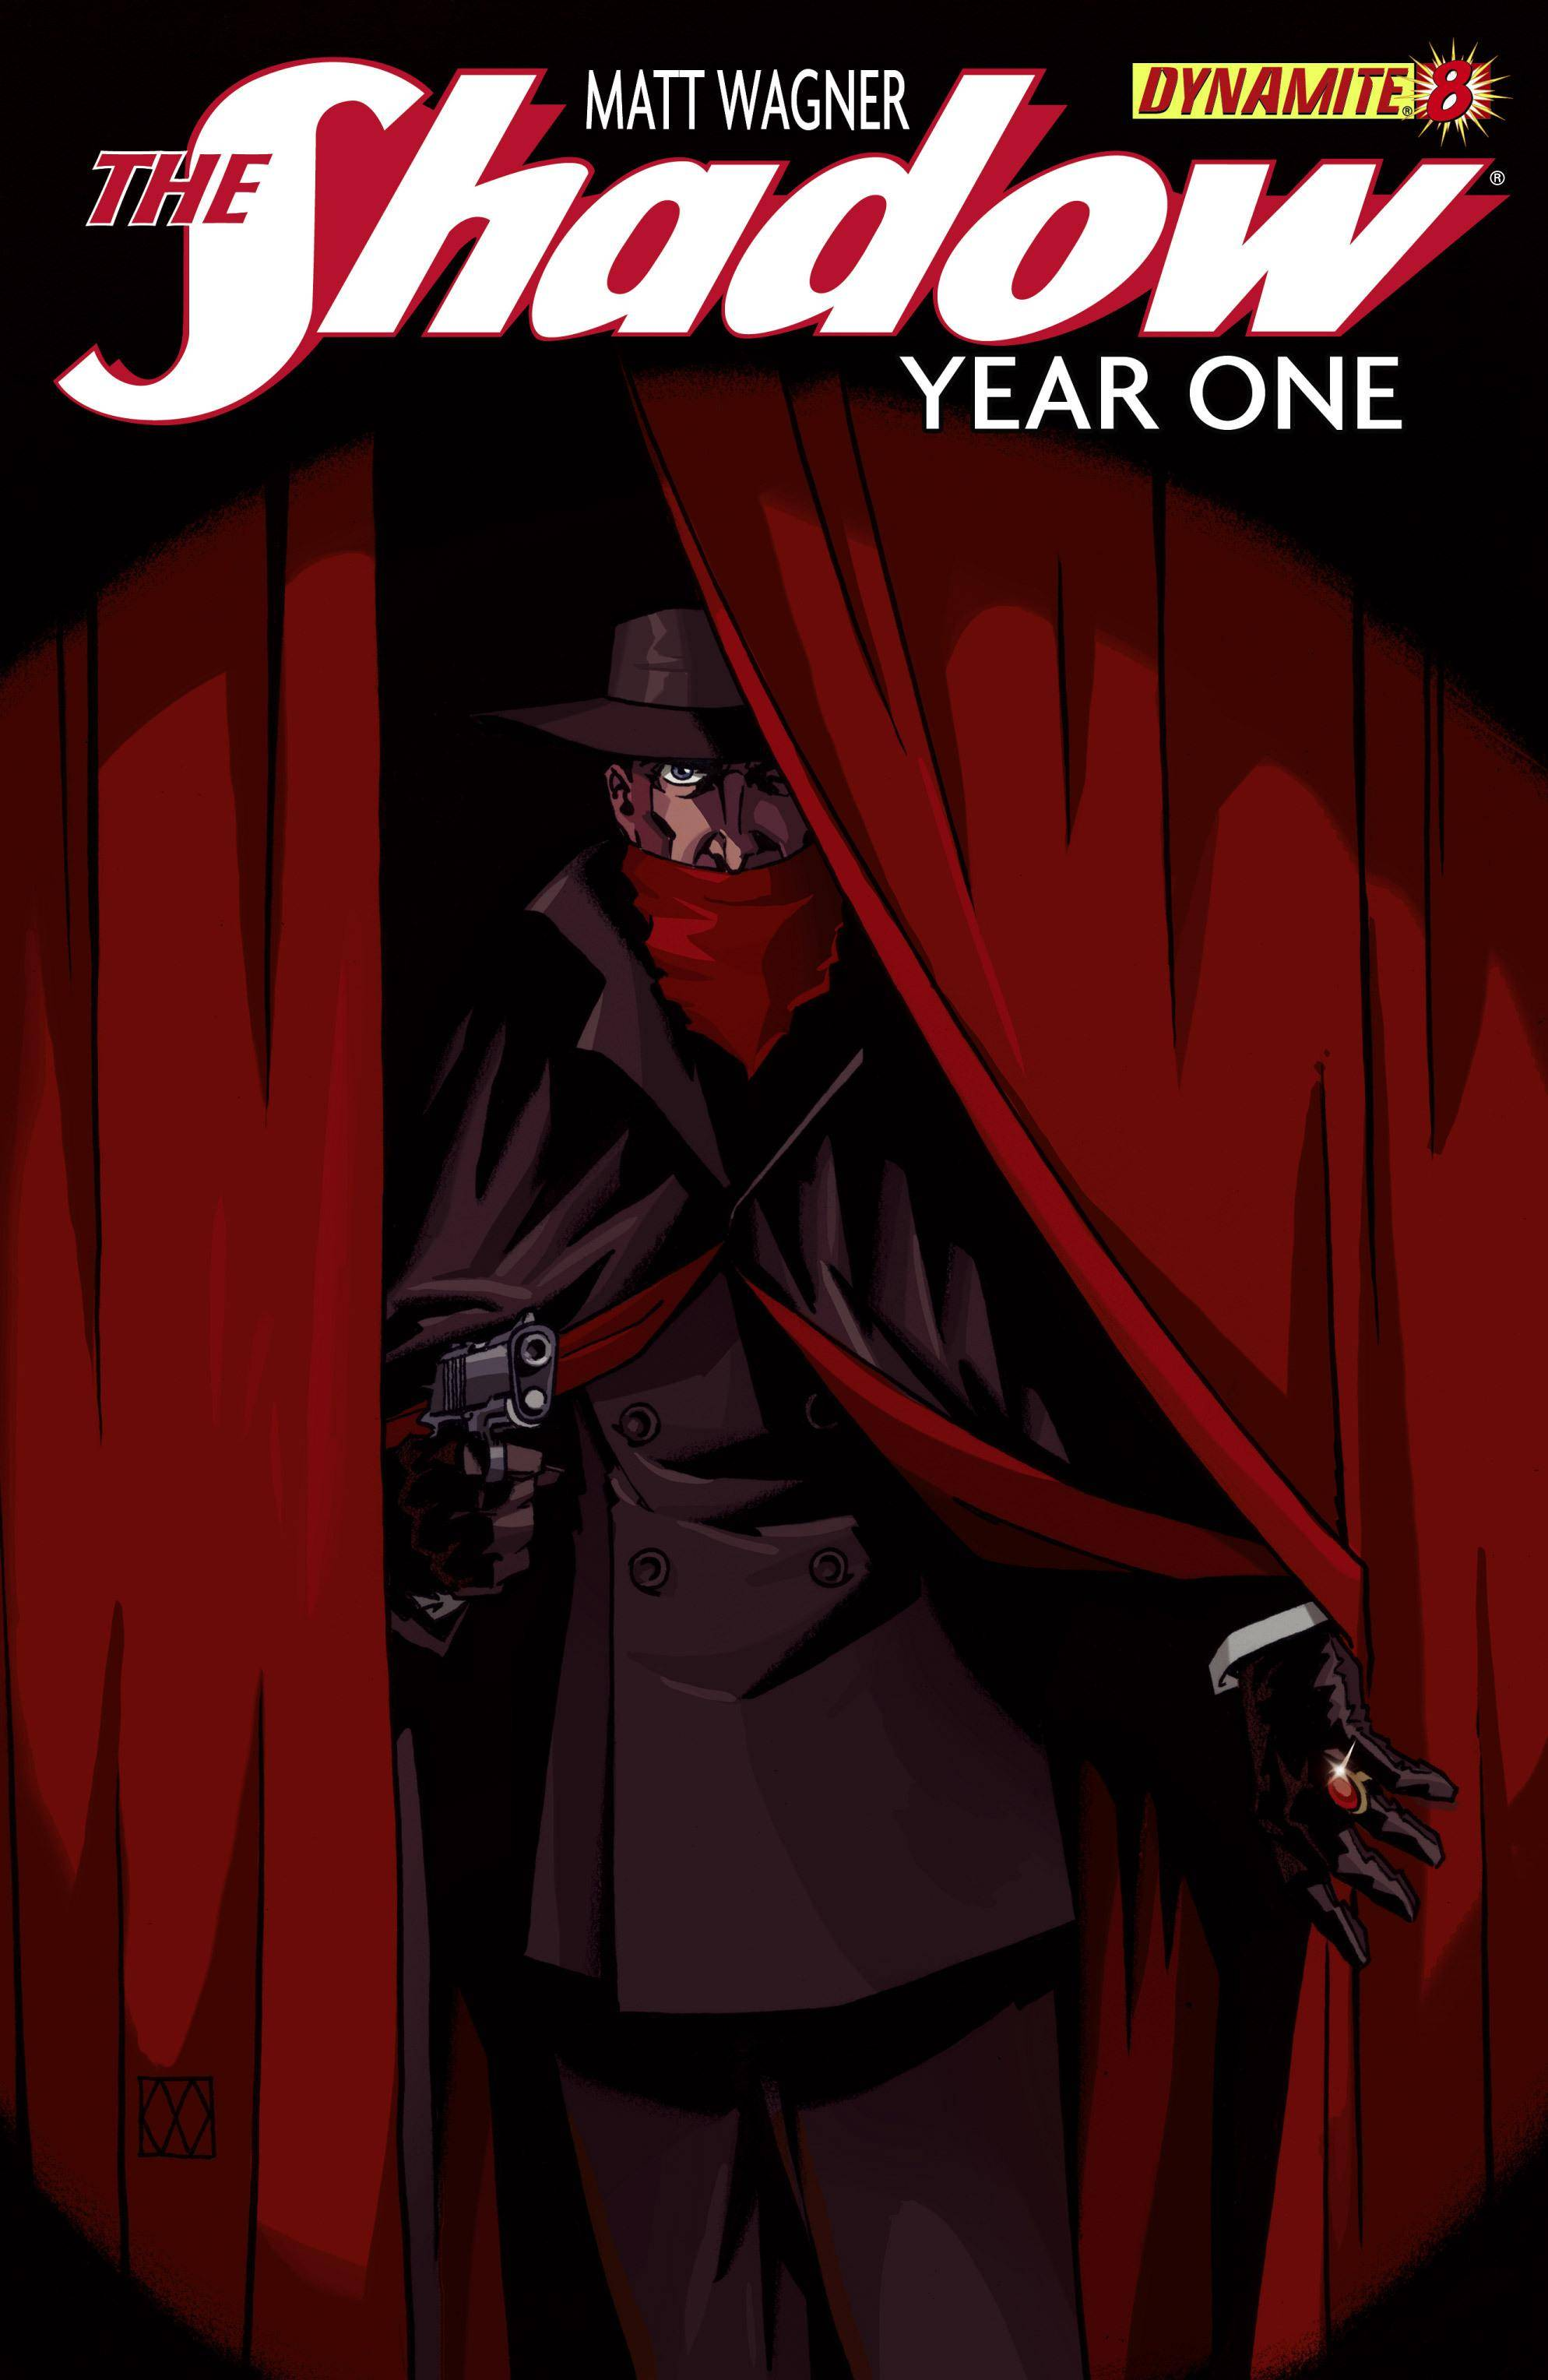 The Shadow - Year One 08 (of 10) (2014) (4 Covers) (Digital) (Darkness-Empire)